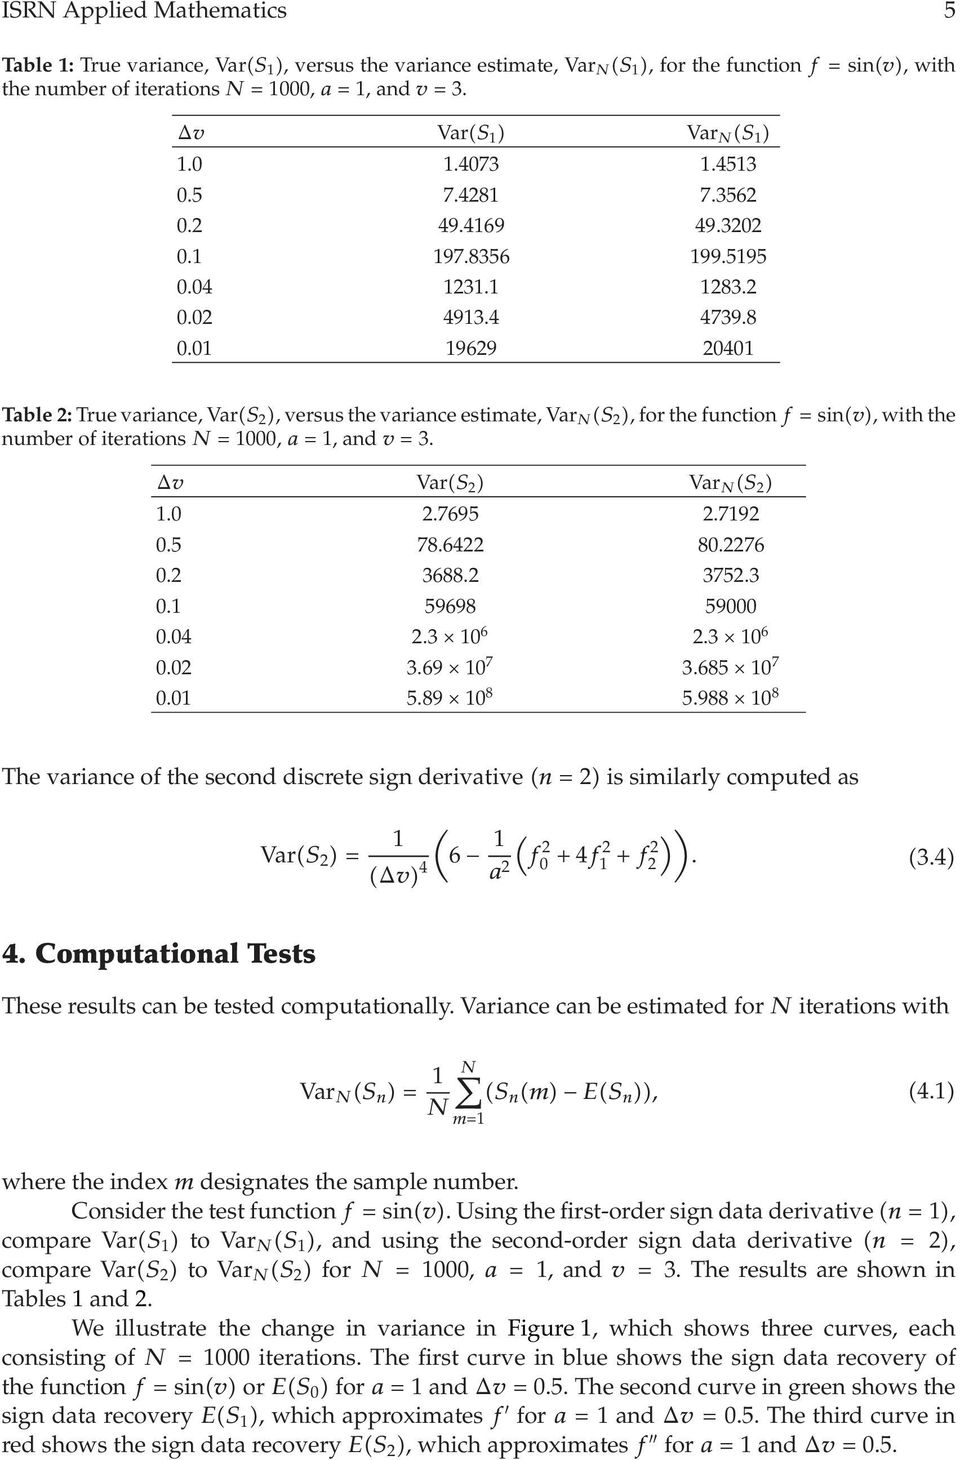 0 969 040 Table : True variace, Var S, versus the variace estimate, Var N S, for the fuctio f si v,withthe umber of iteratios N 000, a, ad v 3. Δv Var S Var N S.0.7695.79 0.5 78.64 80.76 0. 3688. 375.